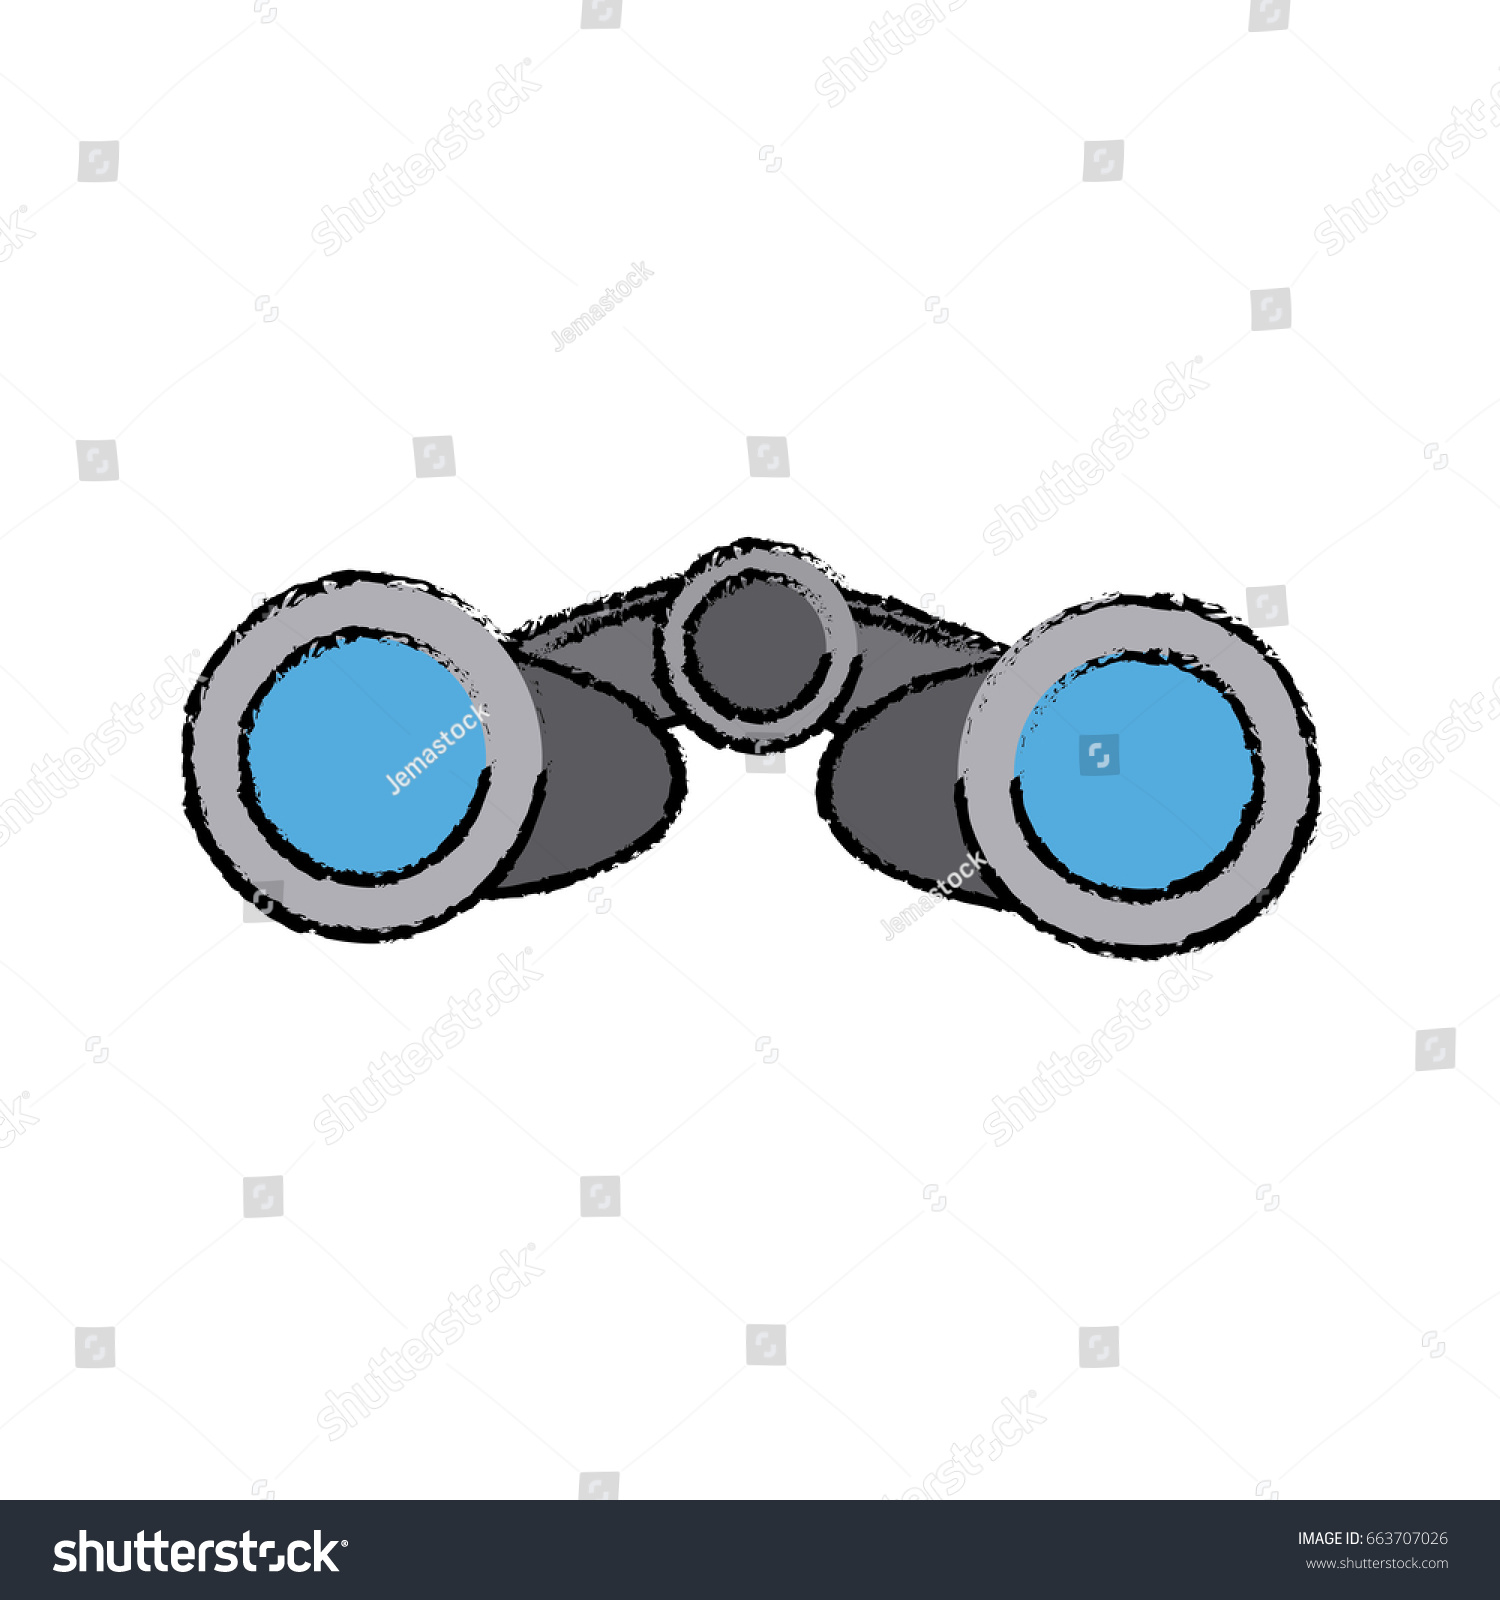 hight resolution of binoculars business element optic and lens theme front view